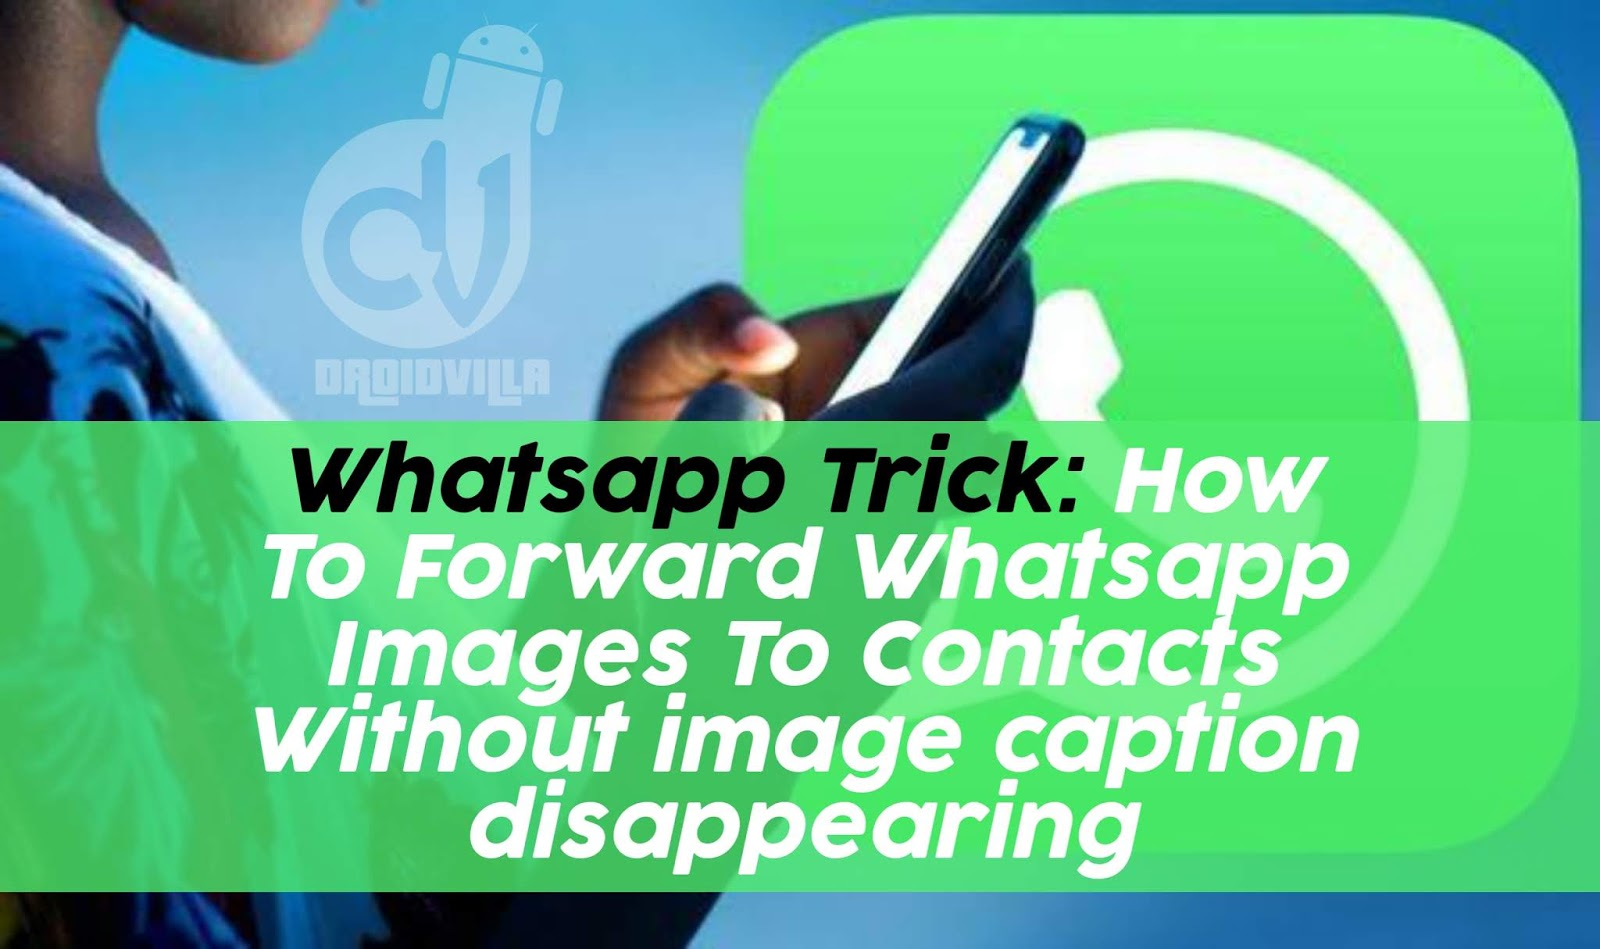 Whatsapp Trick: How To Forward Whatsapp Images To Contacts Without image caption disappearing